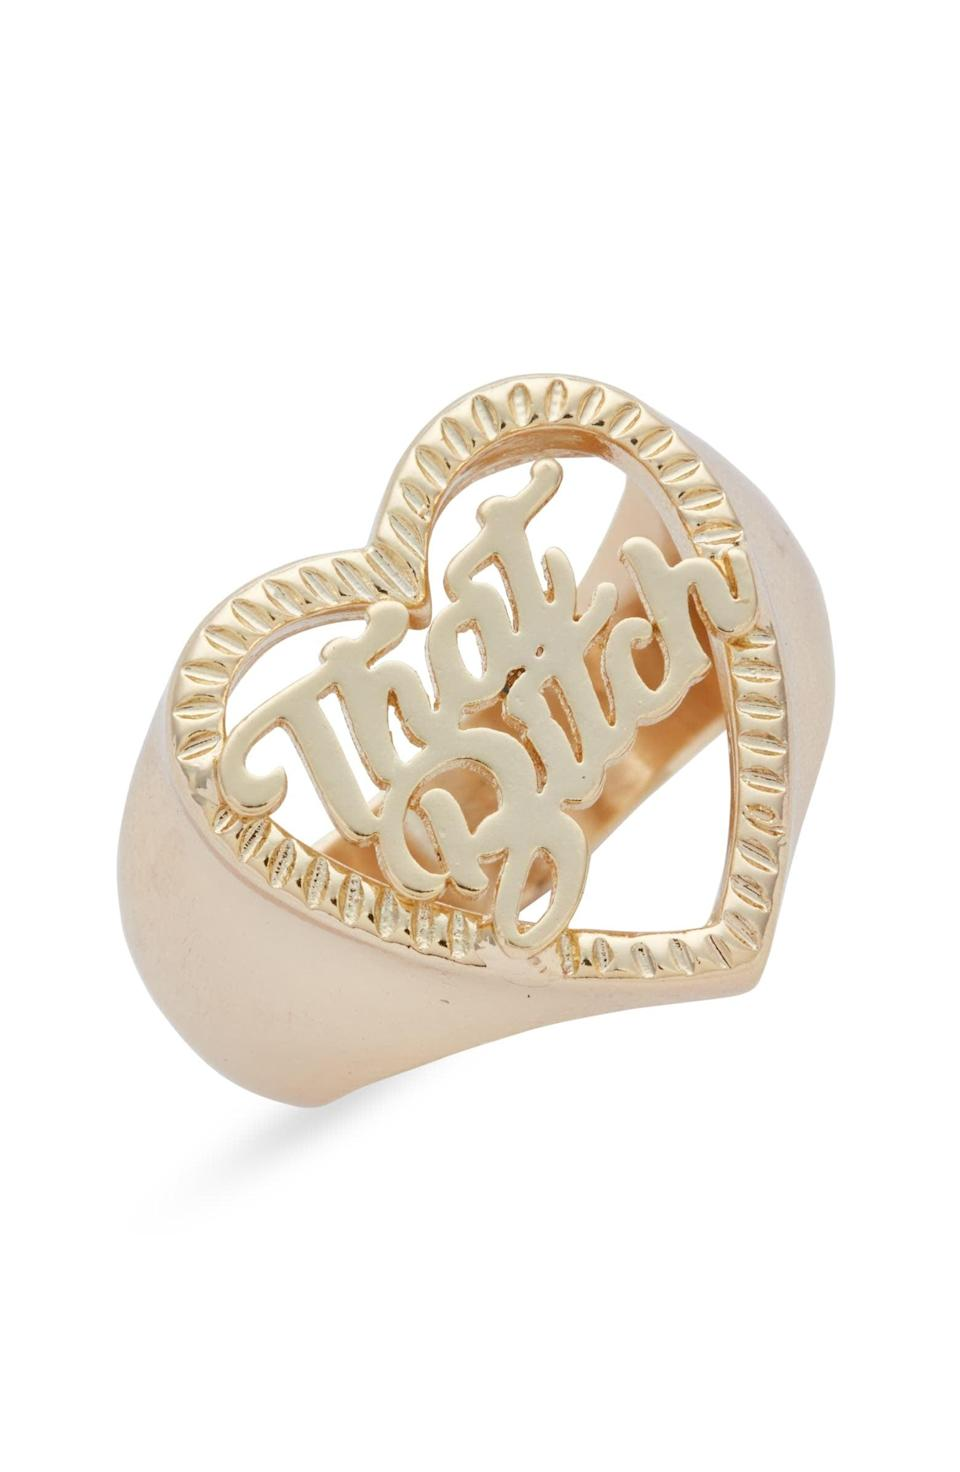 <p>Get them this gorgeous <span>Honey B. That B*tch Ring</span> ($36) to make the ultimate statement. They'll adore this fun find and feel absolutely fabulous!</p>